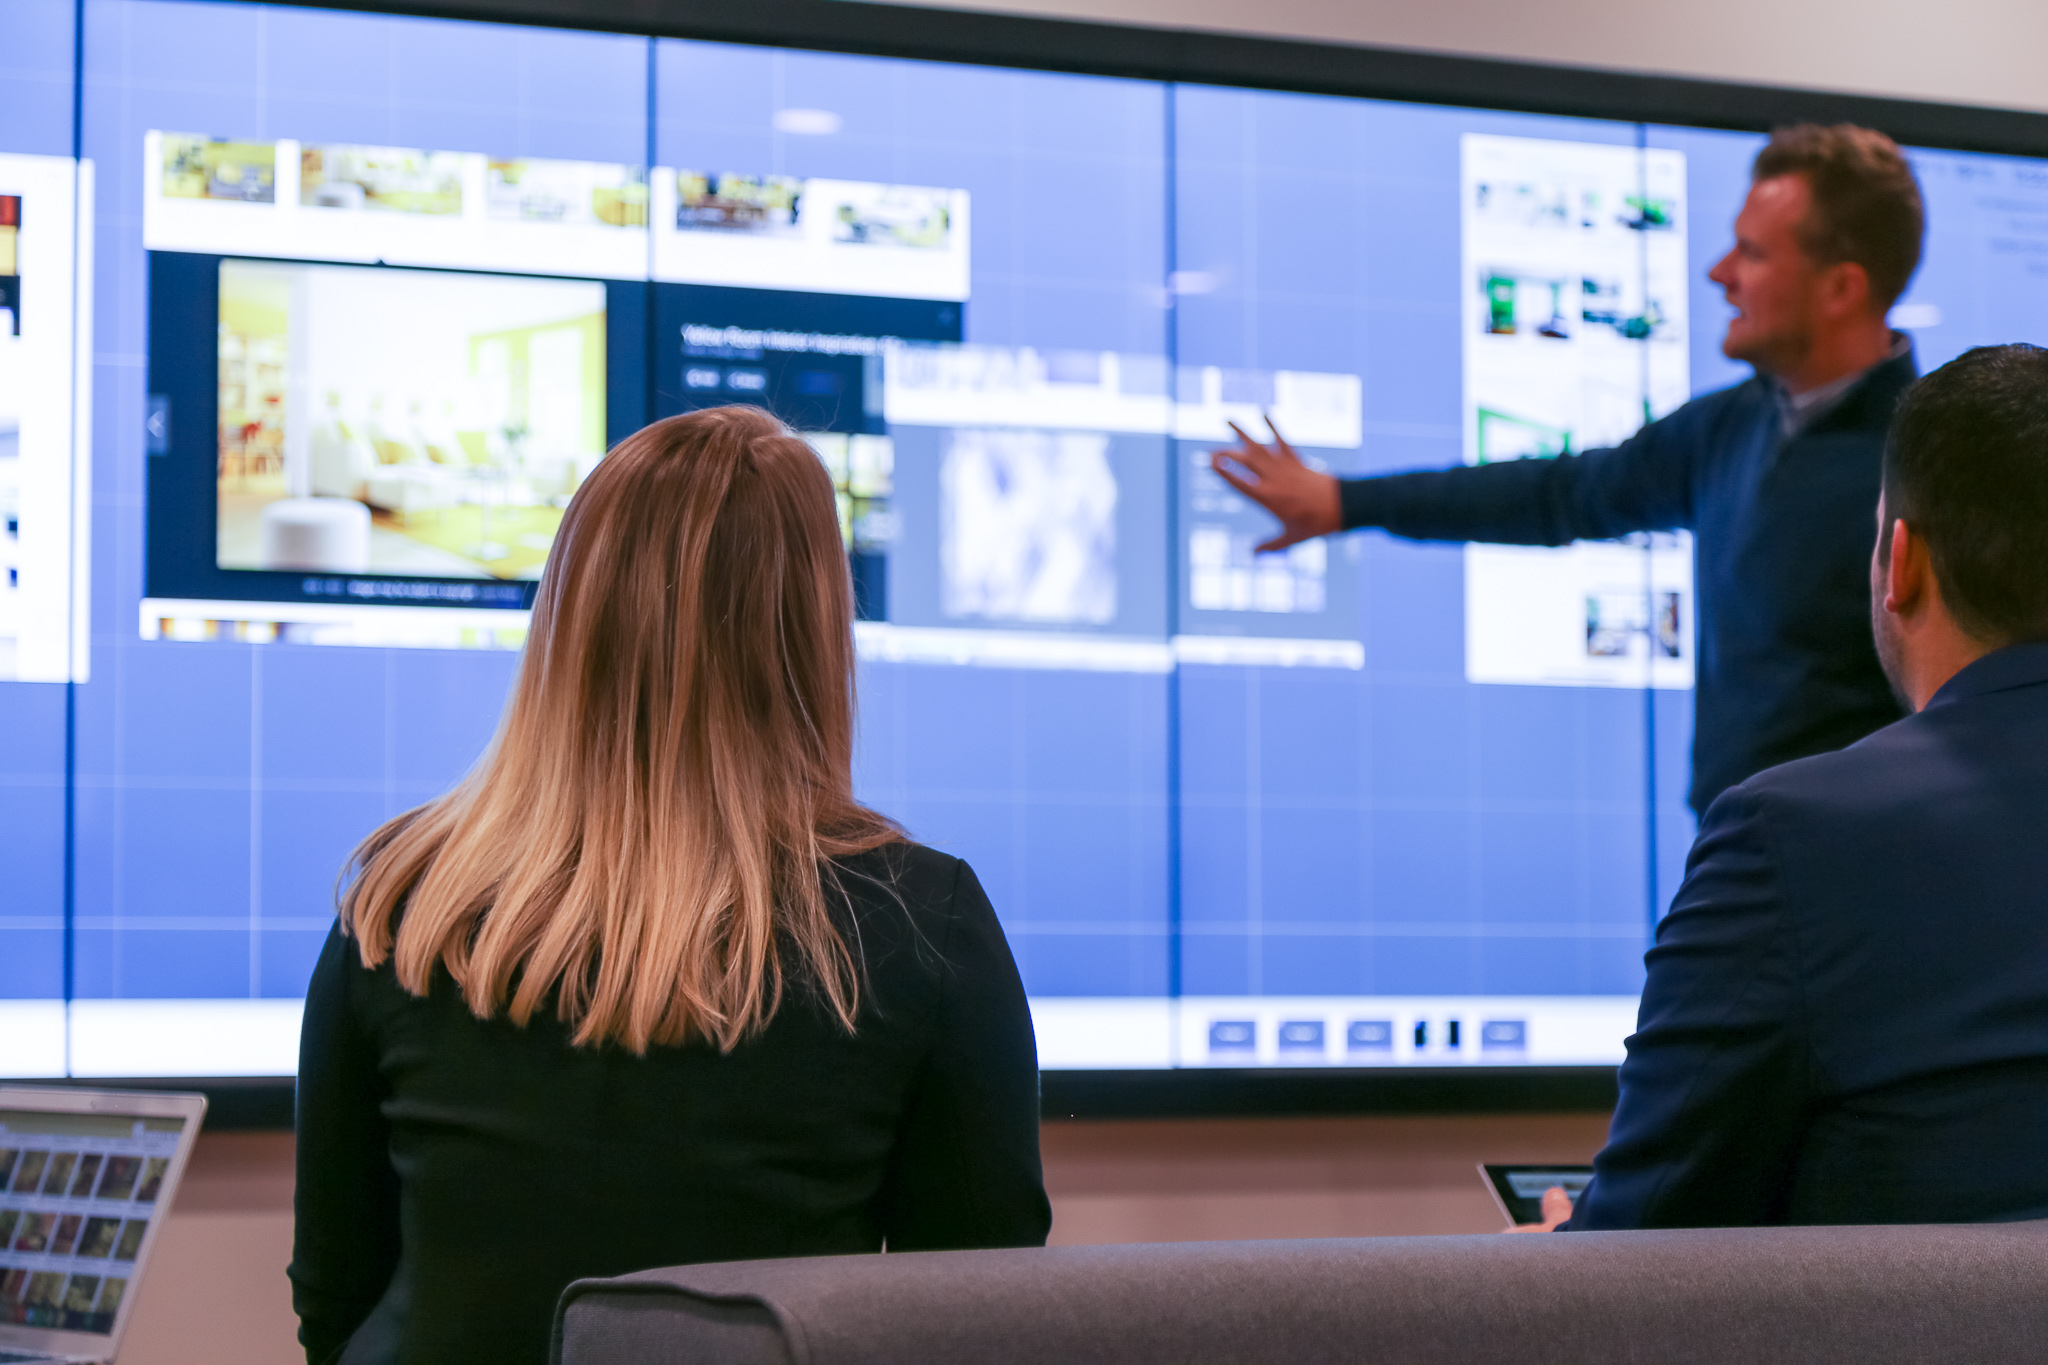 t1v-visual-collaboration-vs-video-conferencing-what-to-use-and-when